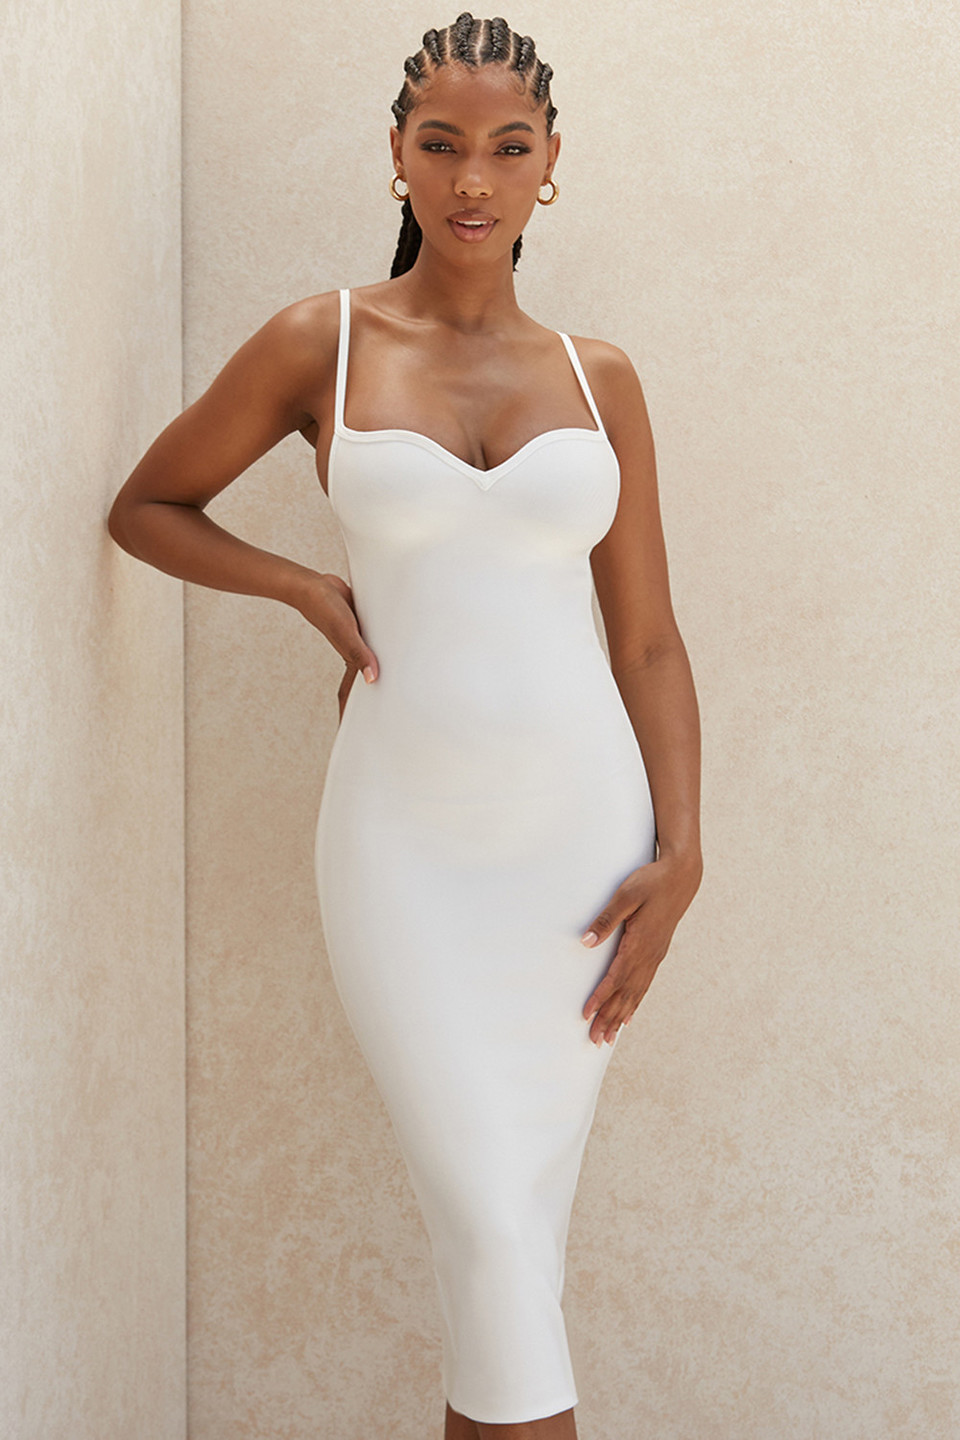 Domenica White Sweetheart Neckline Bandage Dress